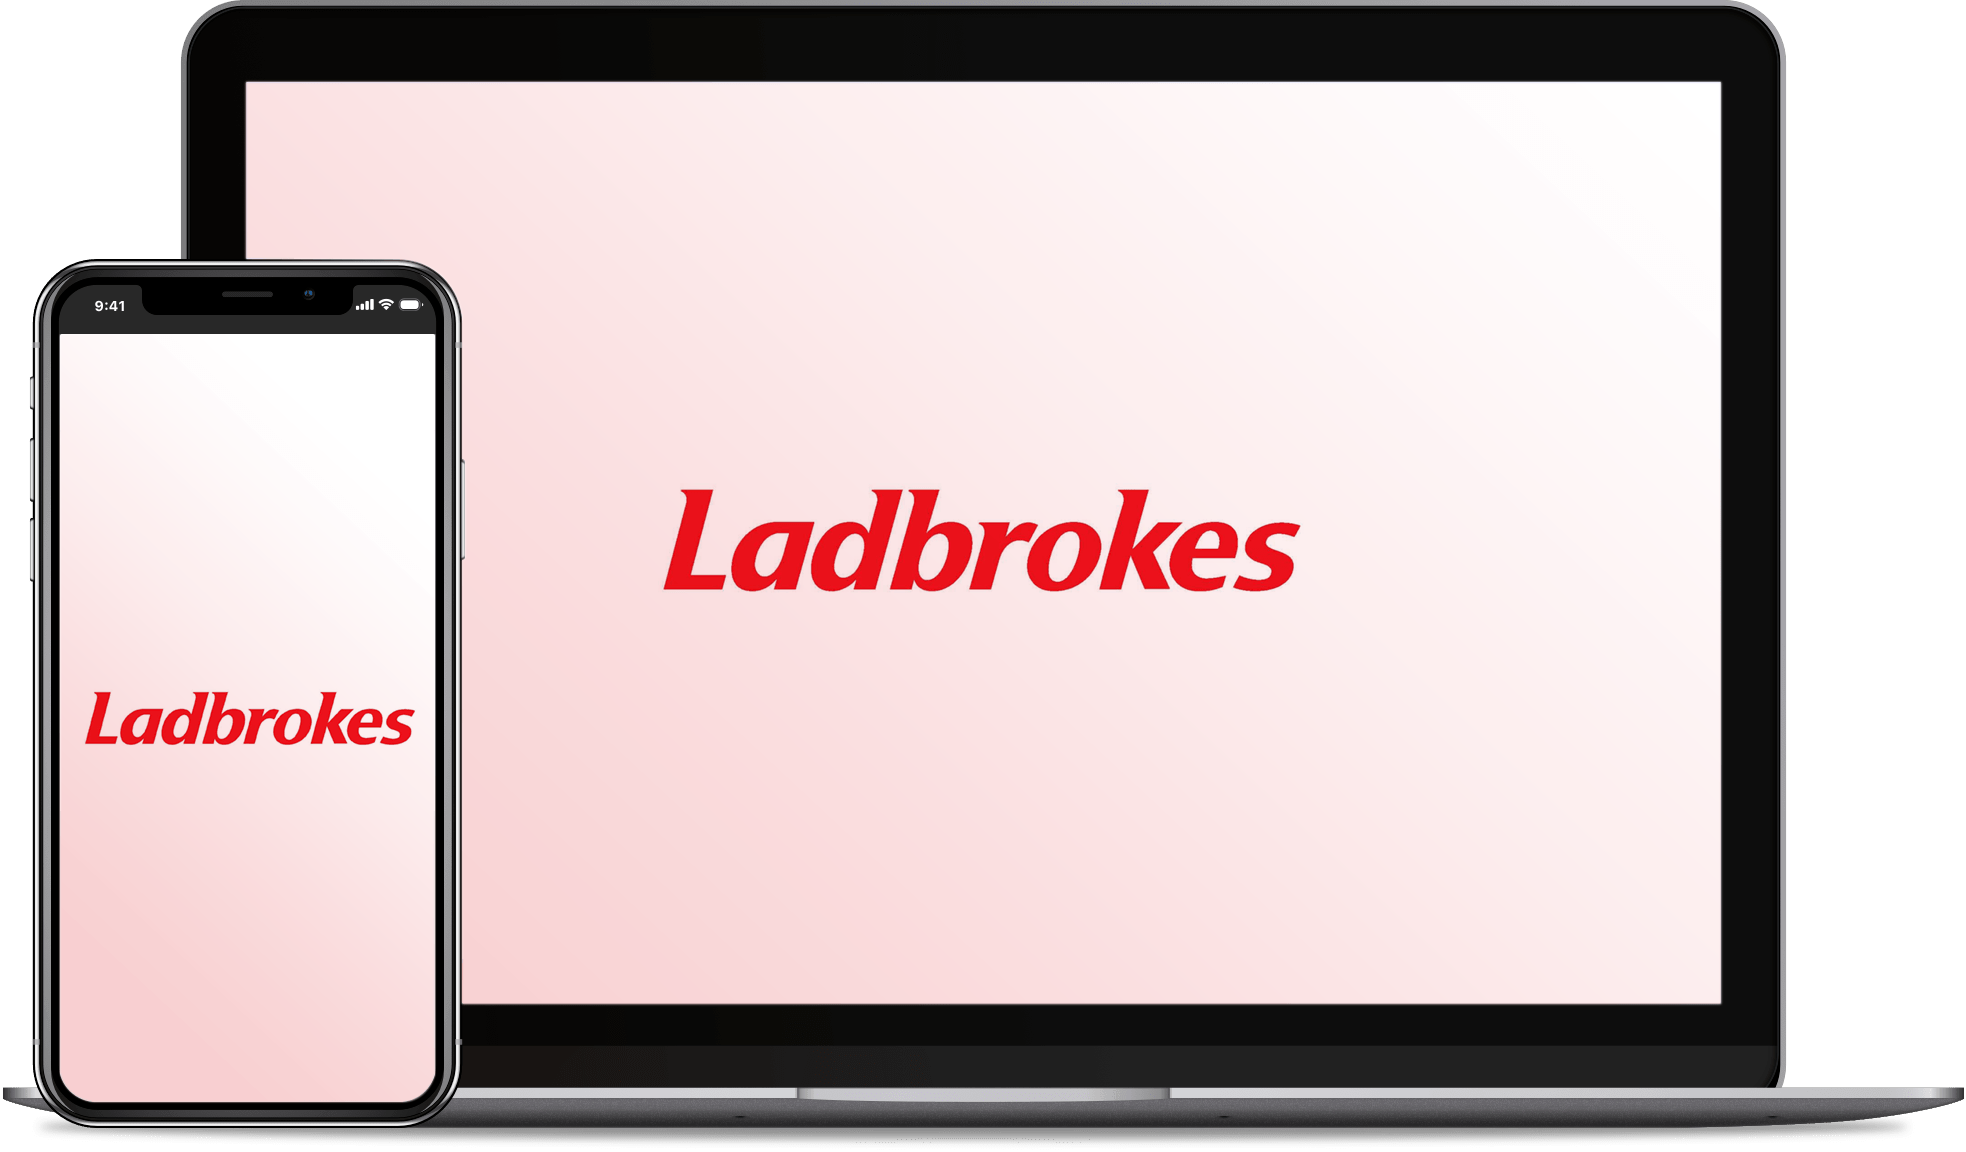 ladbrokes fixed odds financial betting online